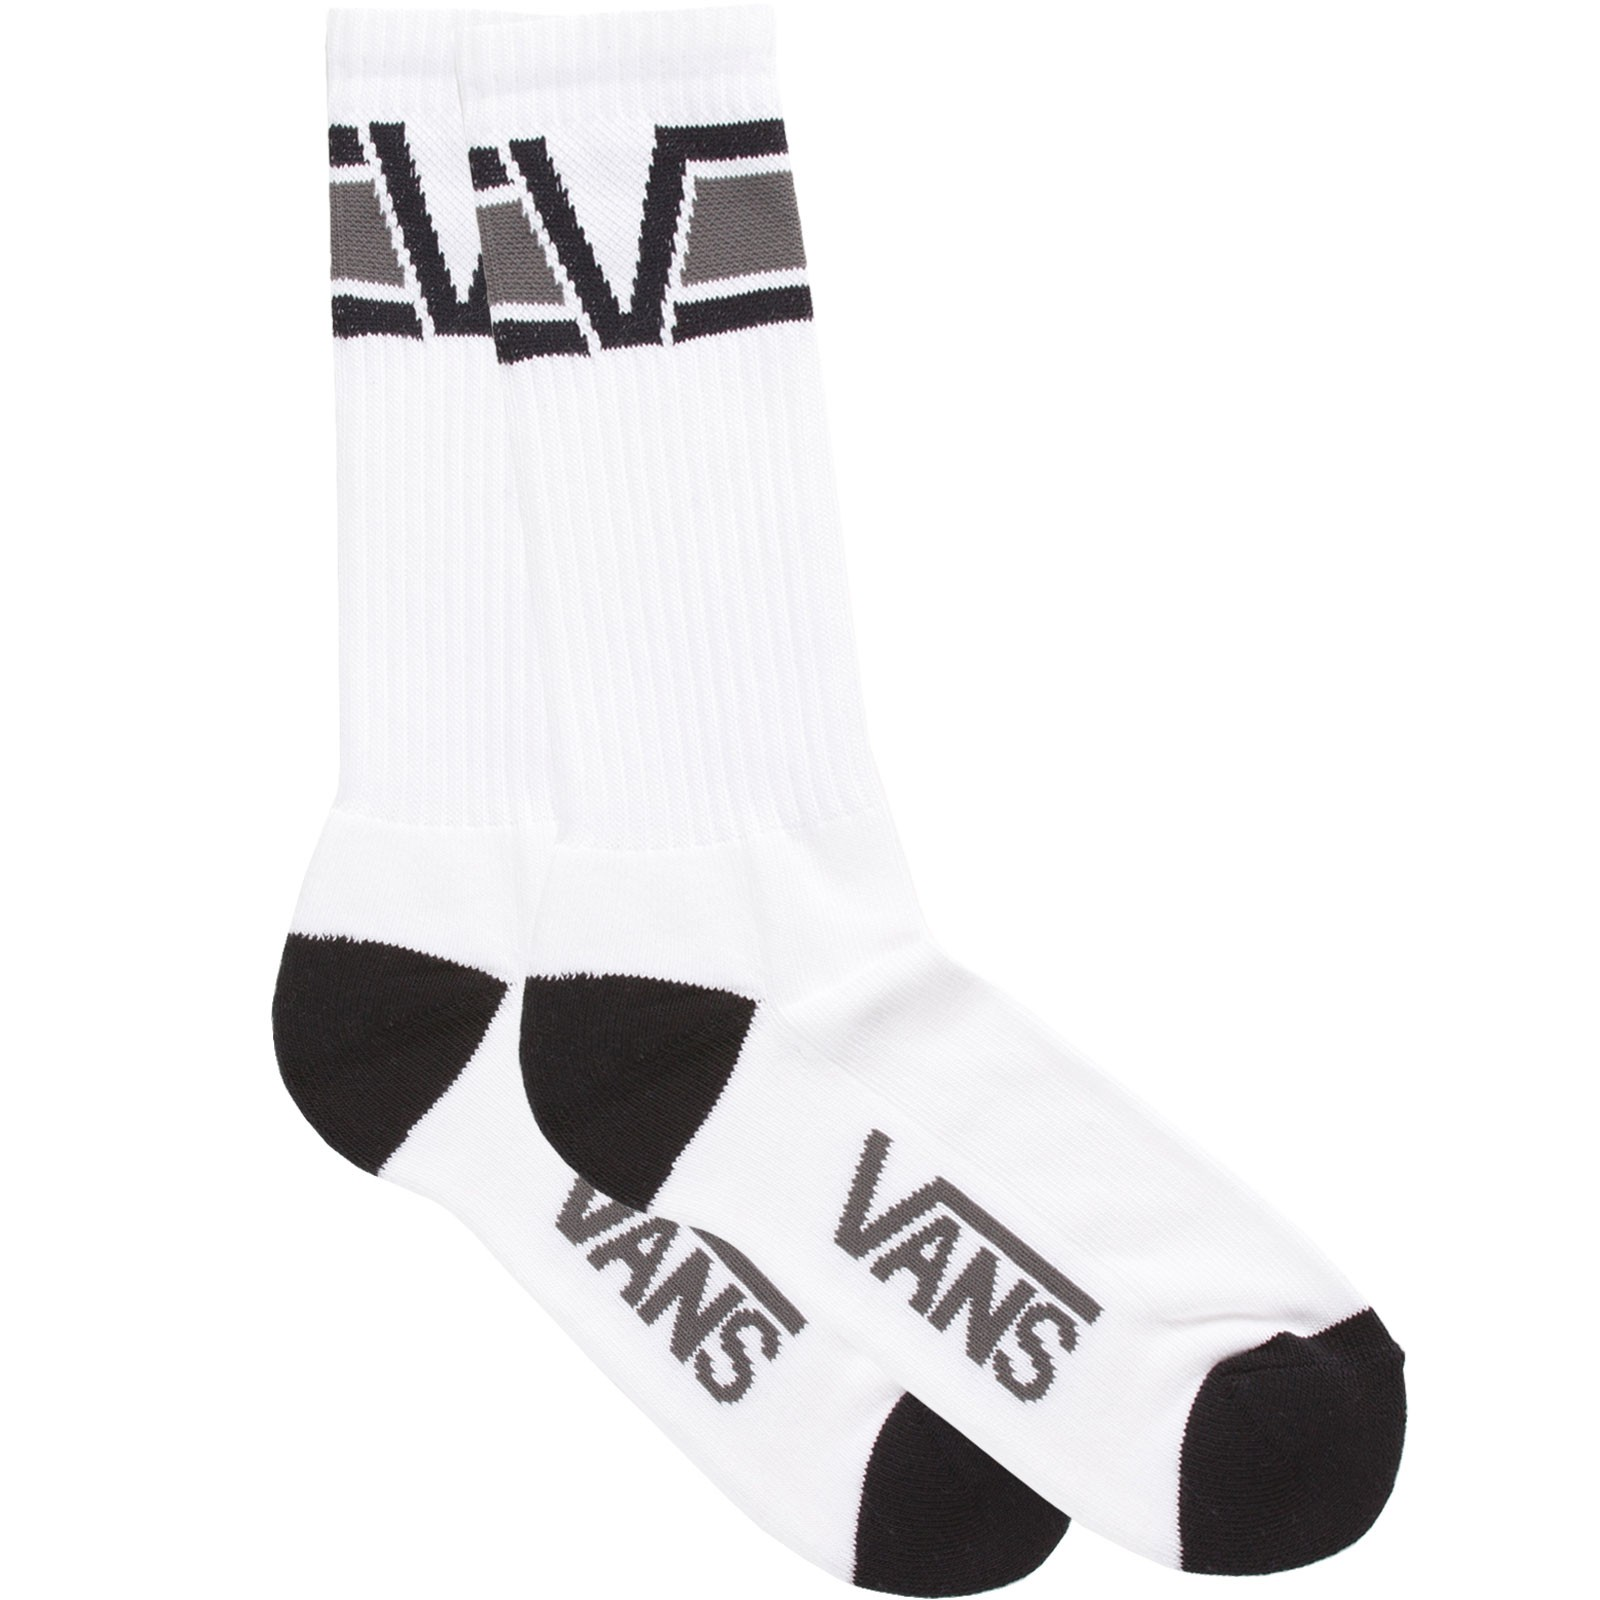 Vans Big V Socks - 1 Pack - Black/Gravel